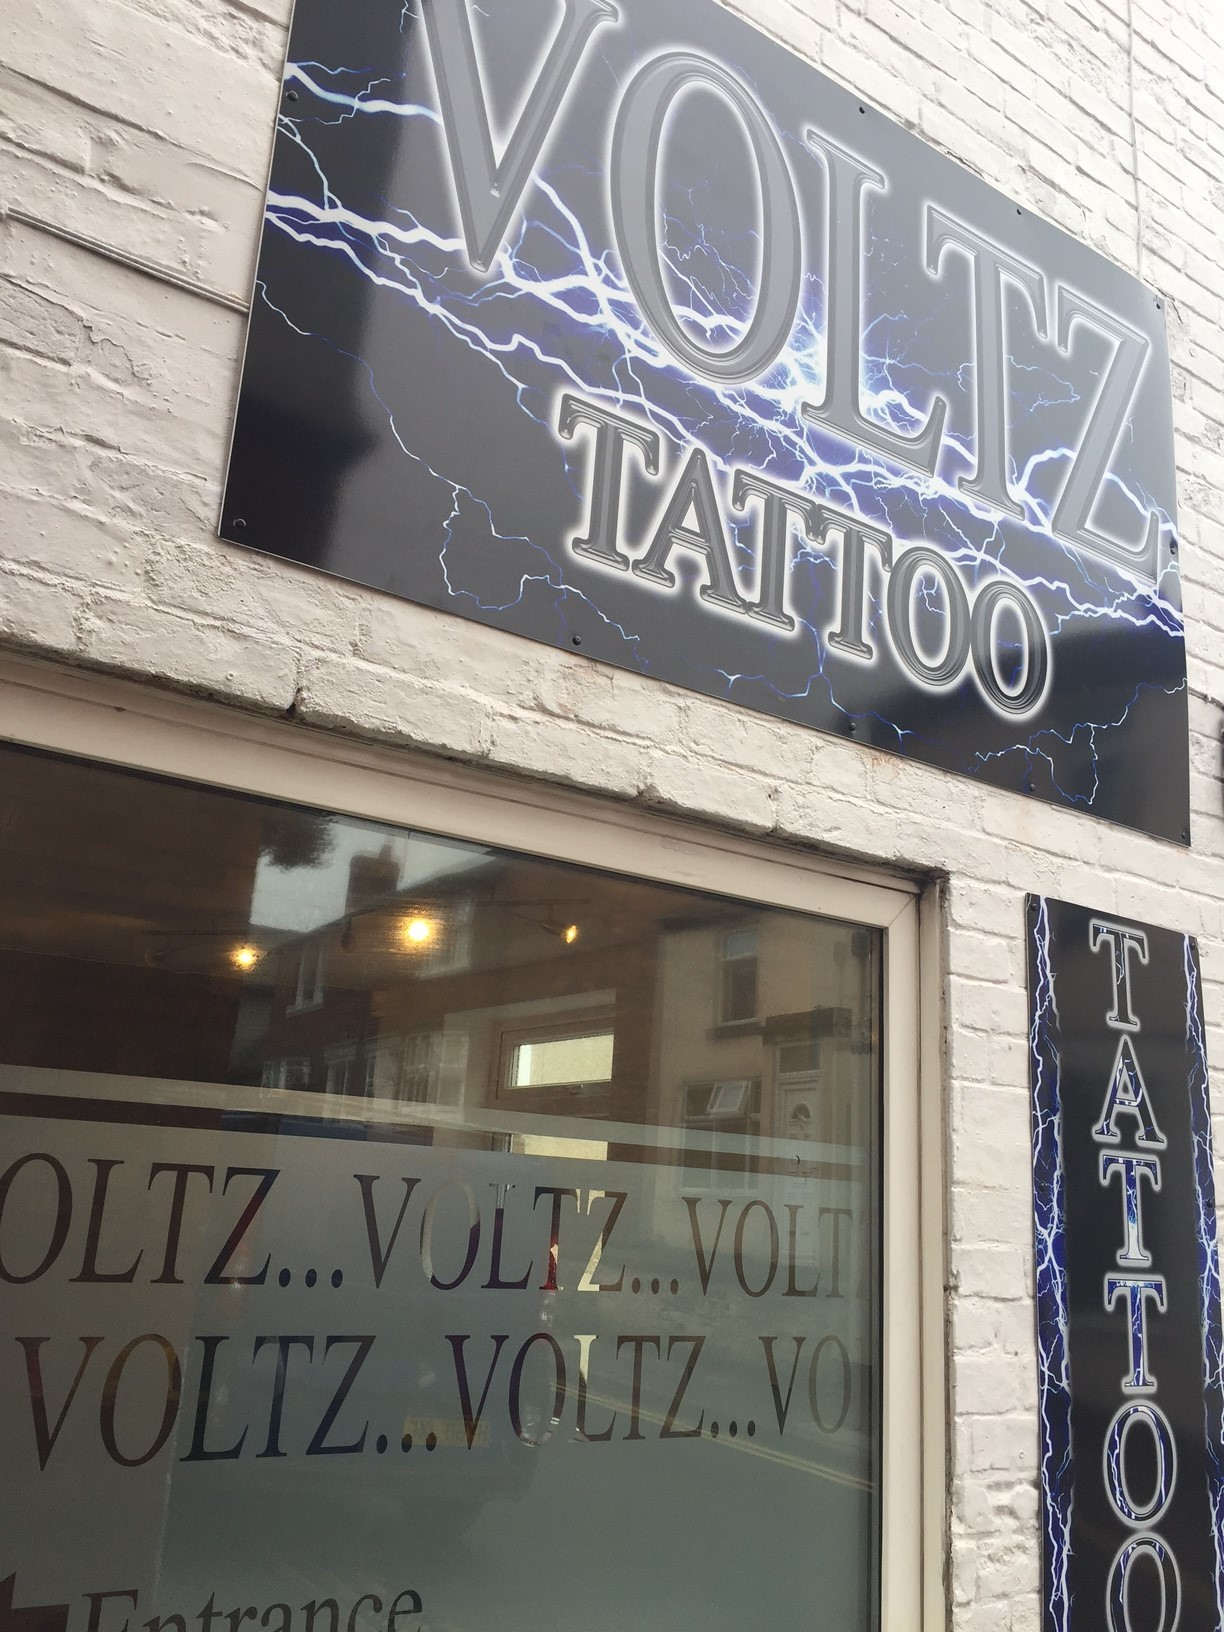 Shop Signage and Window Frosting